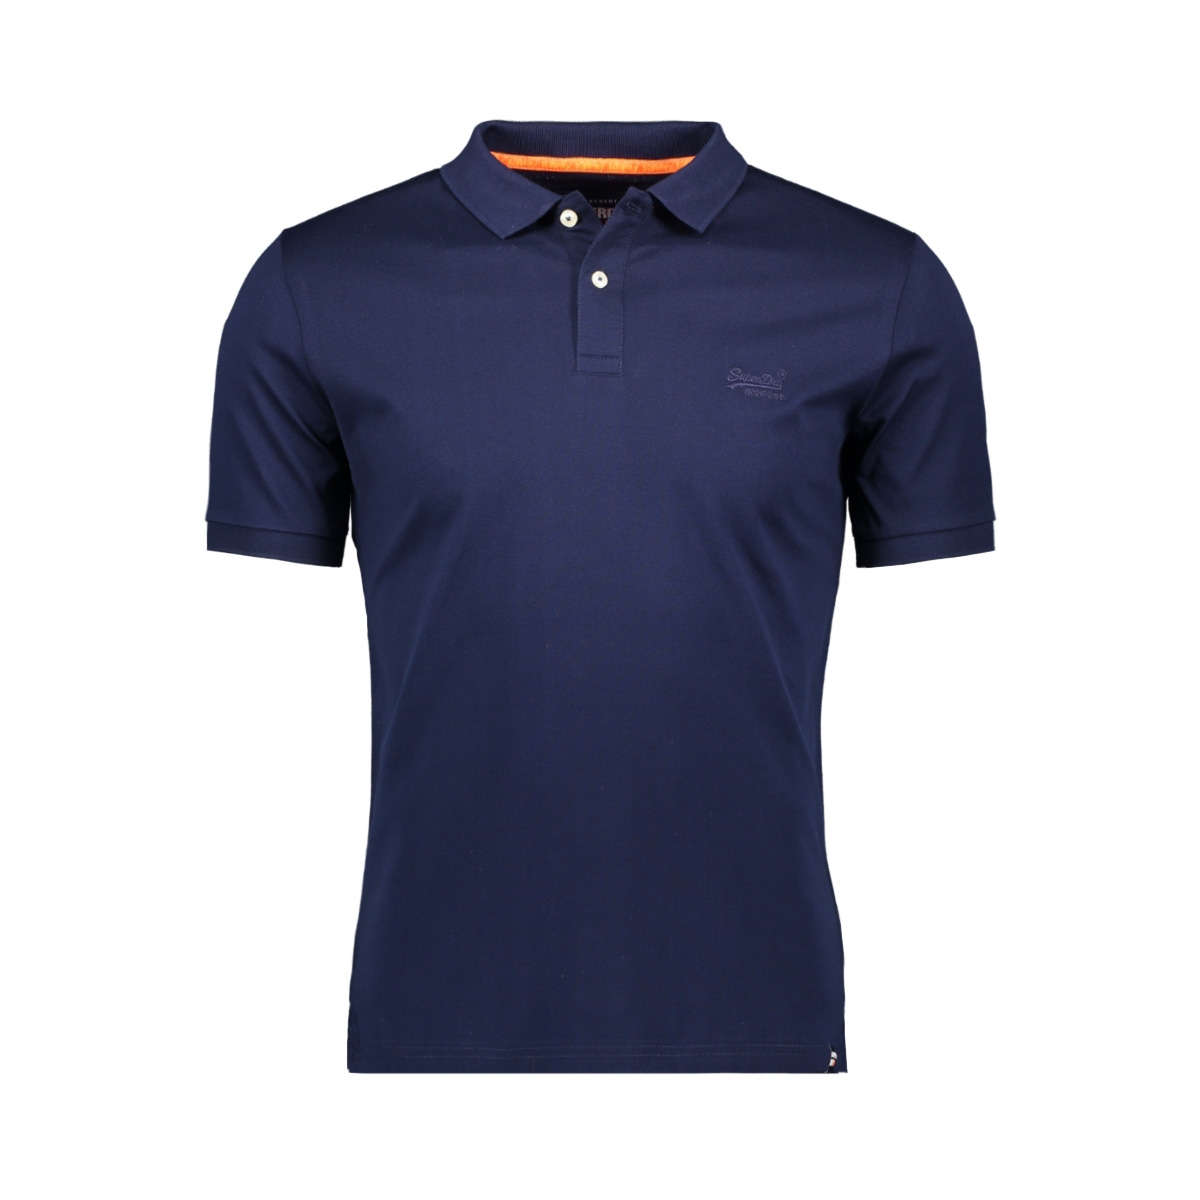 classic lite polo m1100002a superdry polo midnight navy